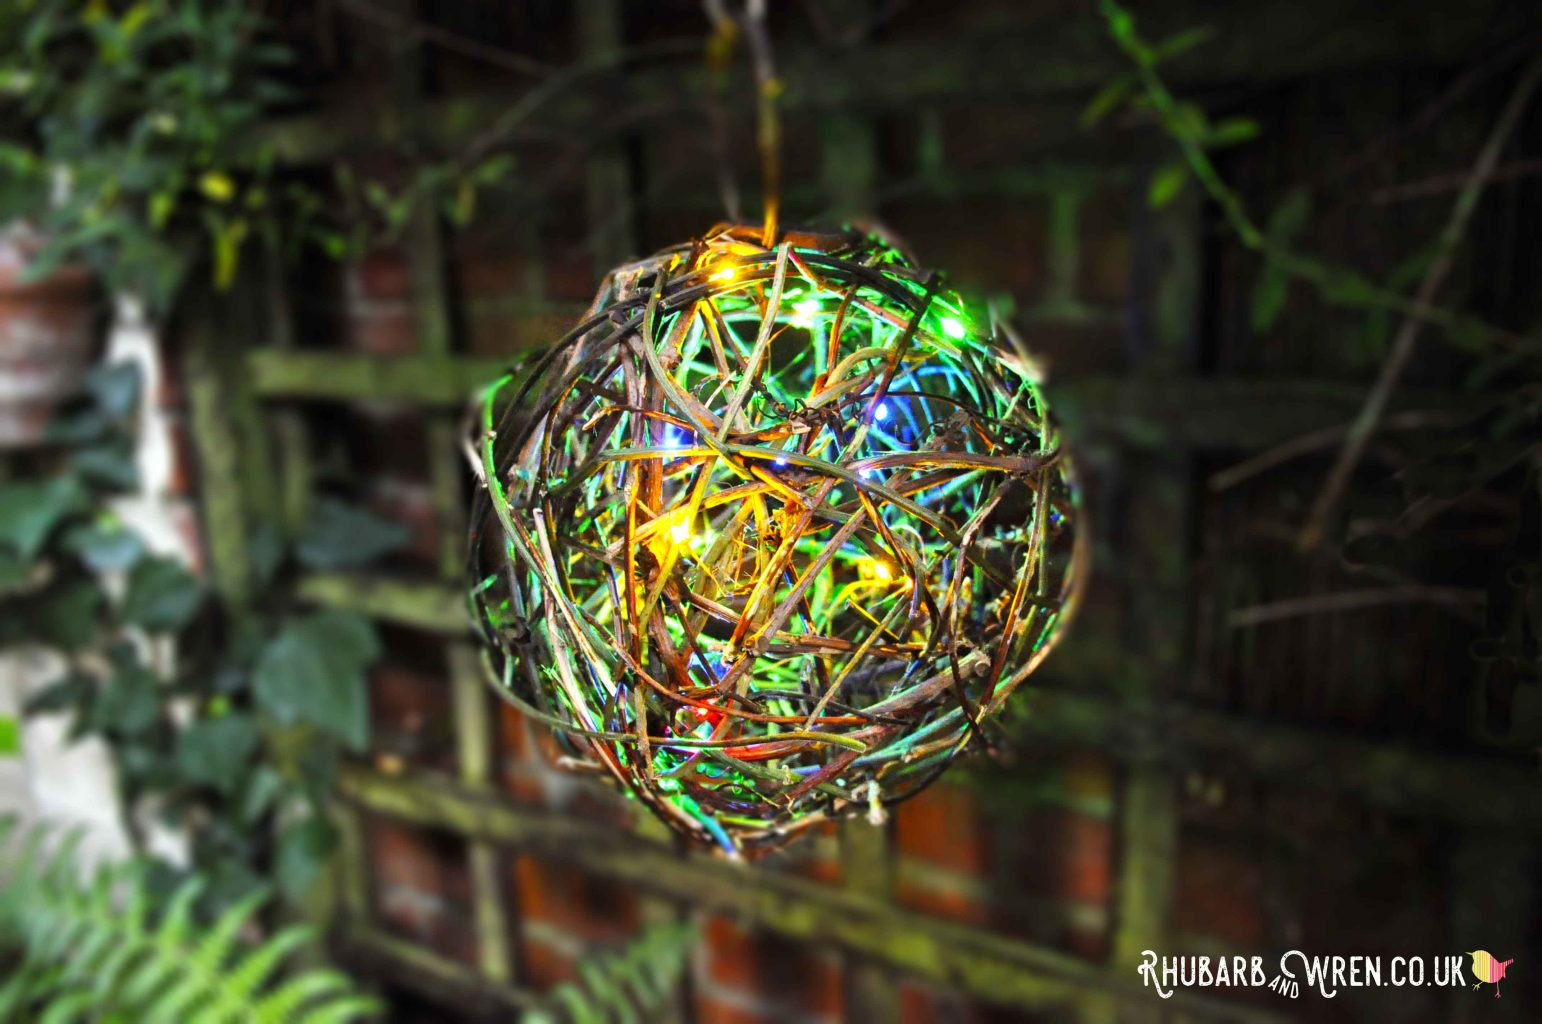 A colourful twig ball lantern hanging in the garden